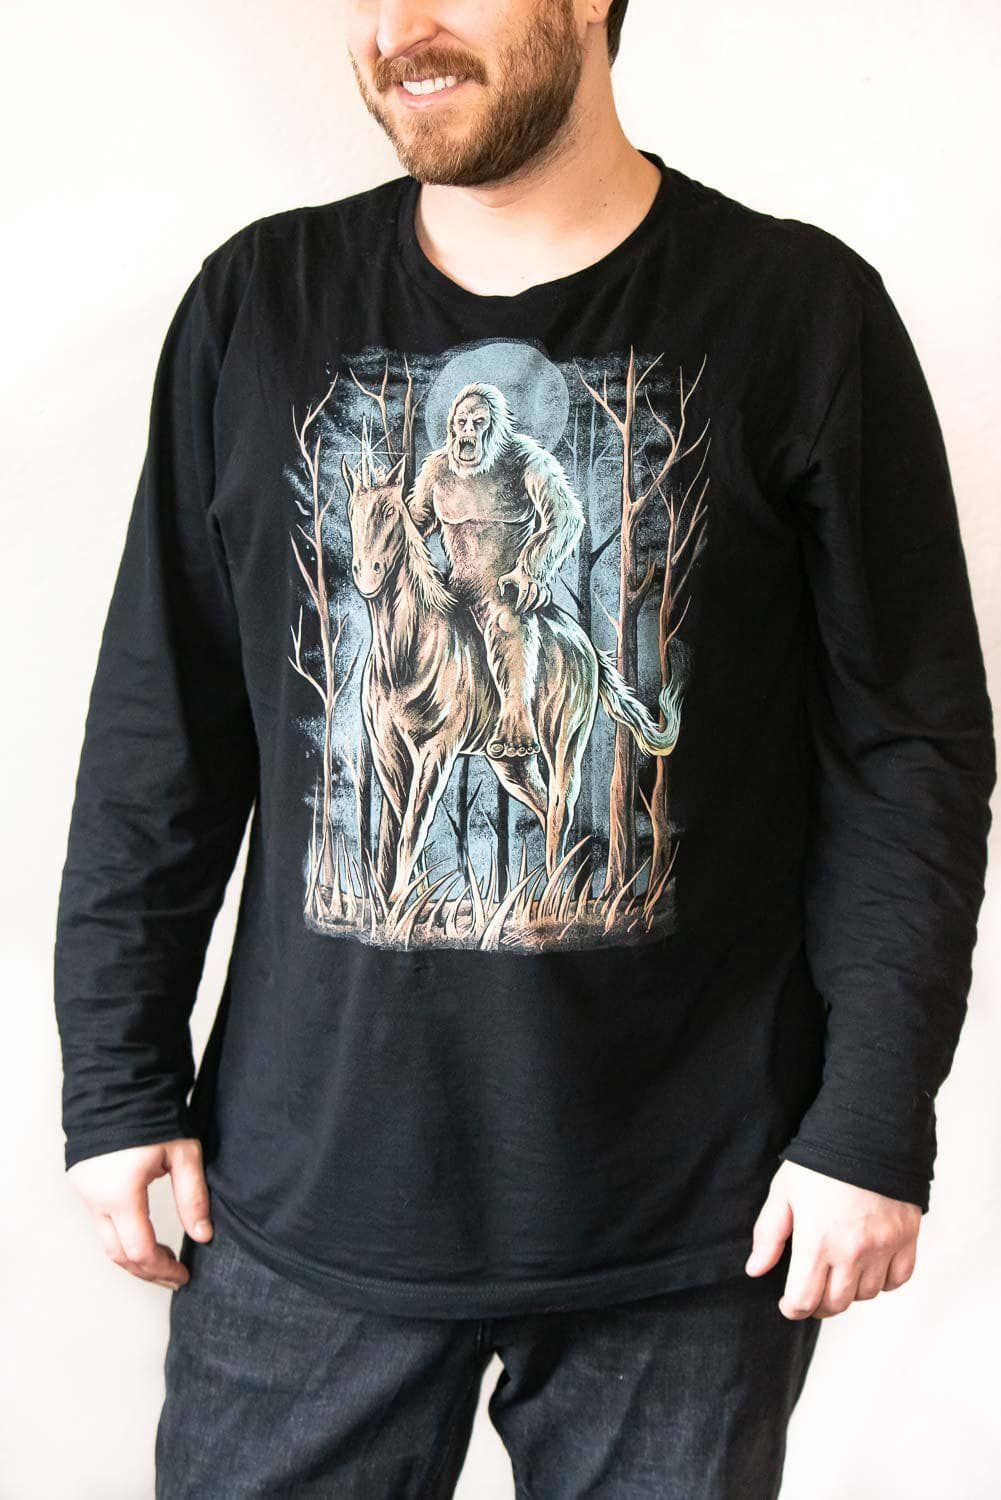 Front view Midnight Encounter unisex black long sleeve shirt